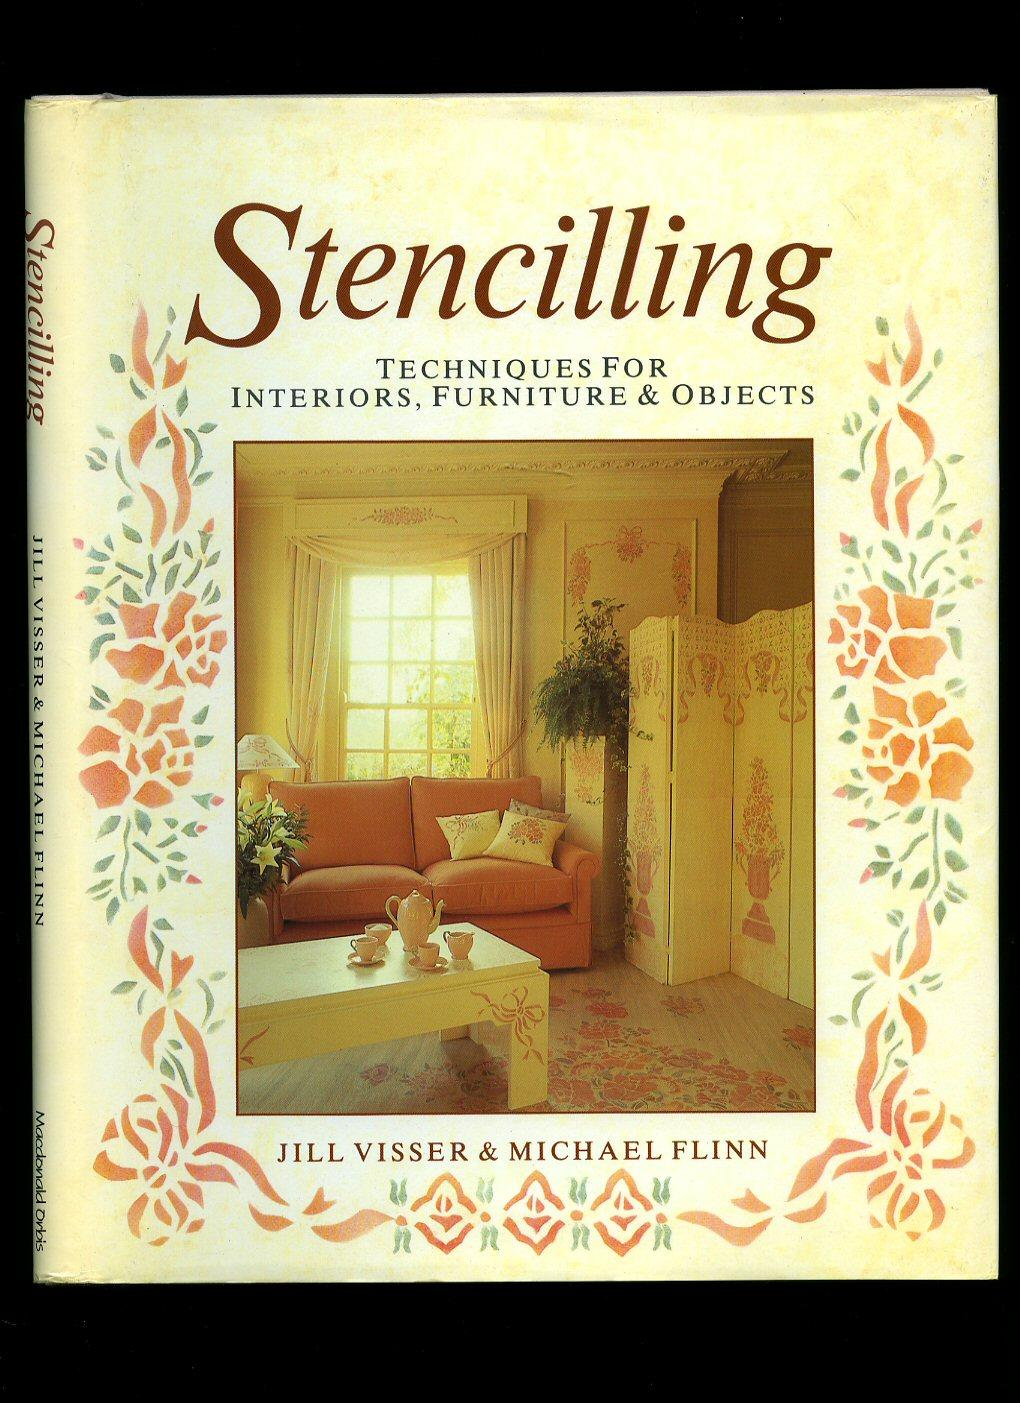 Stencilling; Techniques for Interiors, Furniture and Objects - Visser, Jill and Michael Flinn